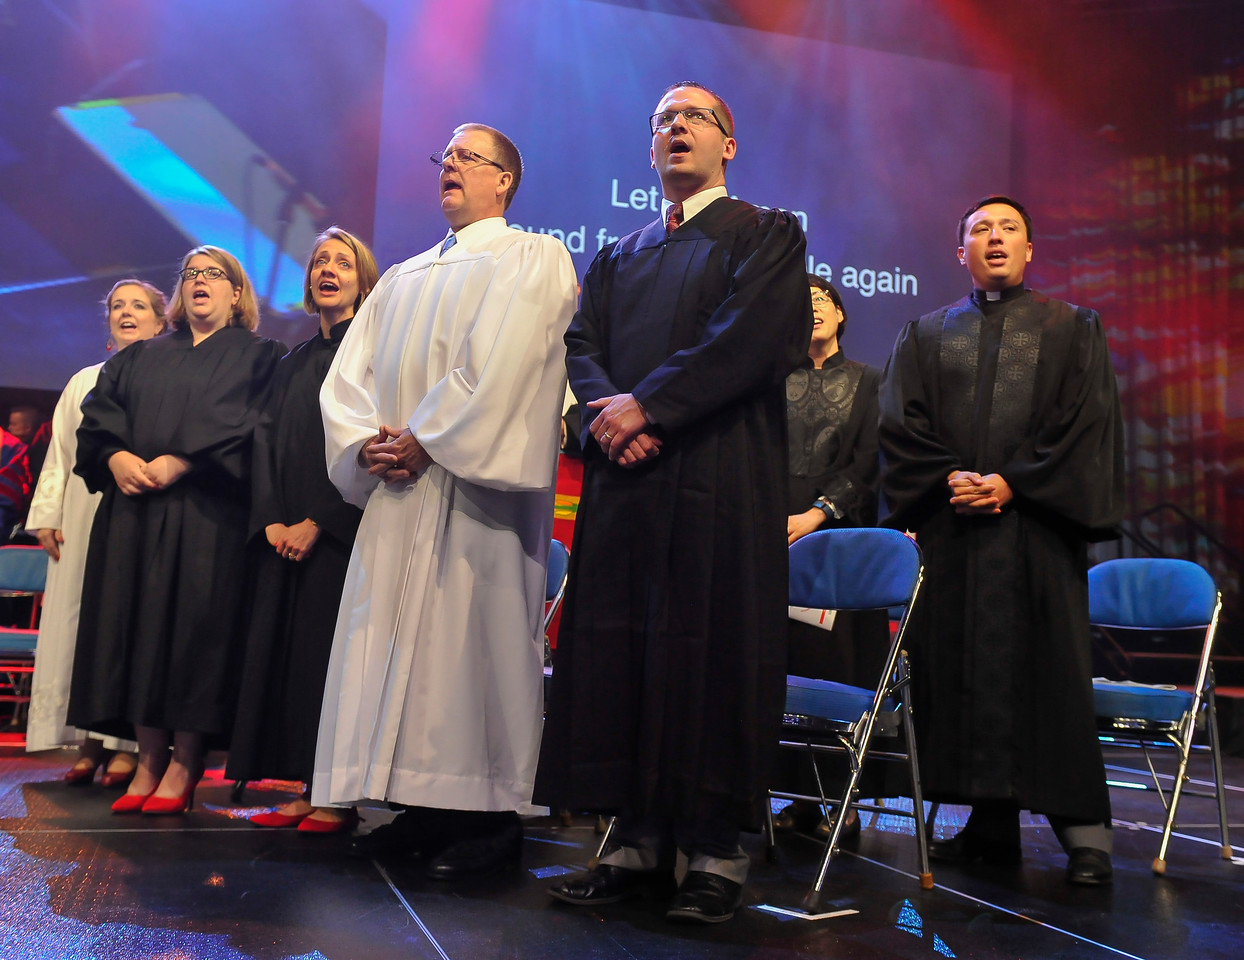 From left, Mary Rebekah Ward Dicken, Crystal A. Jacobson, Adriane Rene Curtis, Brian Edward Cook, Andrew C. Baker, Hye Sook Kim, and Jared Michael Kendall sing at The Commissioning and Ordination Service at the 2017 INUMC Annual Conference in Indianapolis.